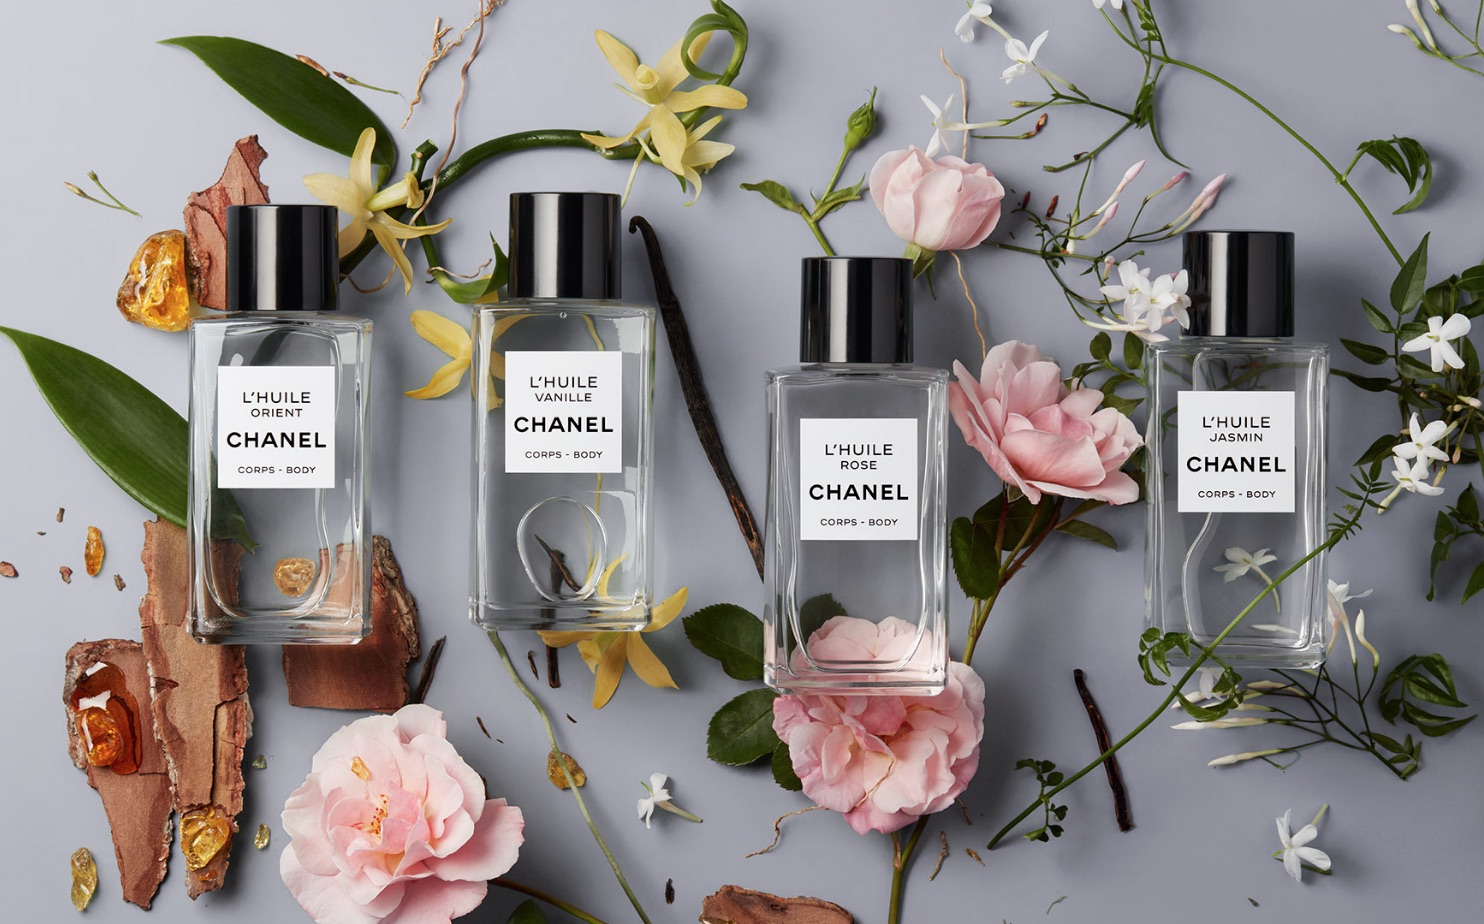 CHANEL_MASSAGE_OILS.jpg